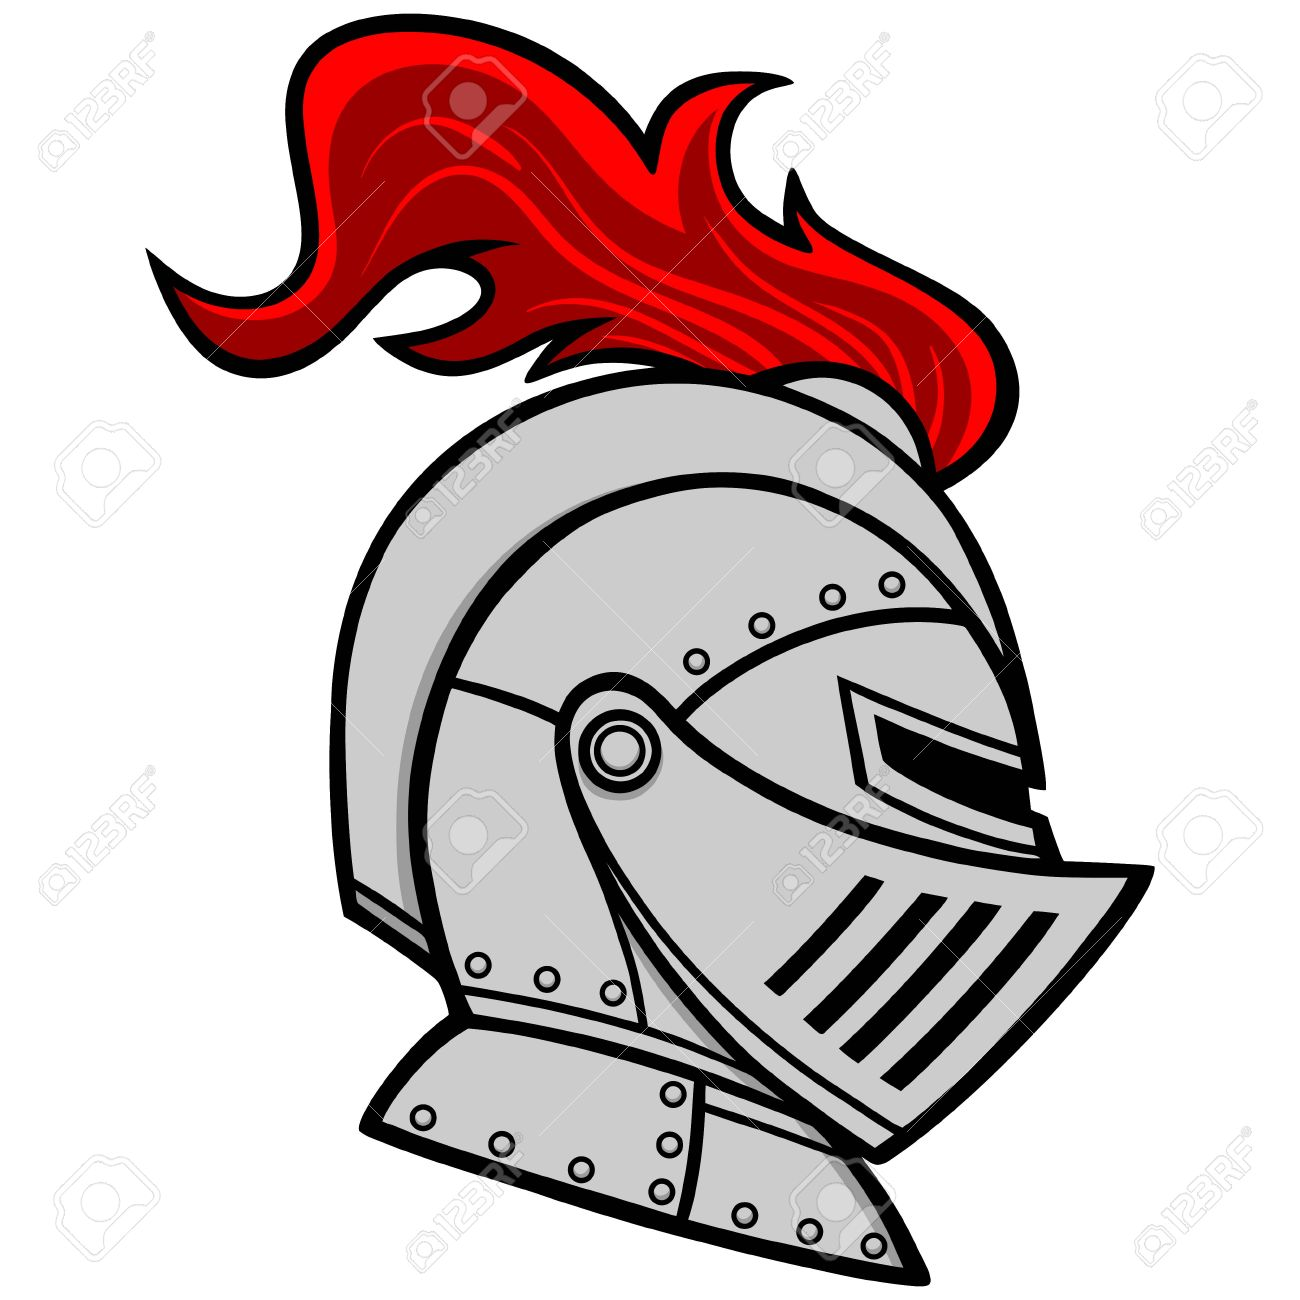 1300x1300 Collection Of Knight Helmet Clipart High Quality, Free